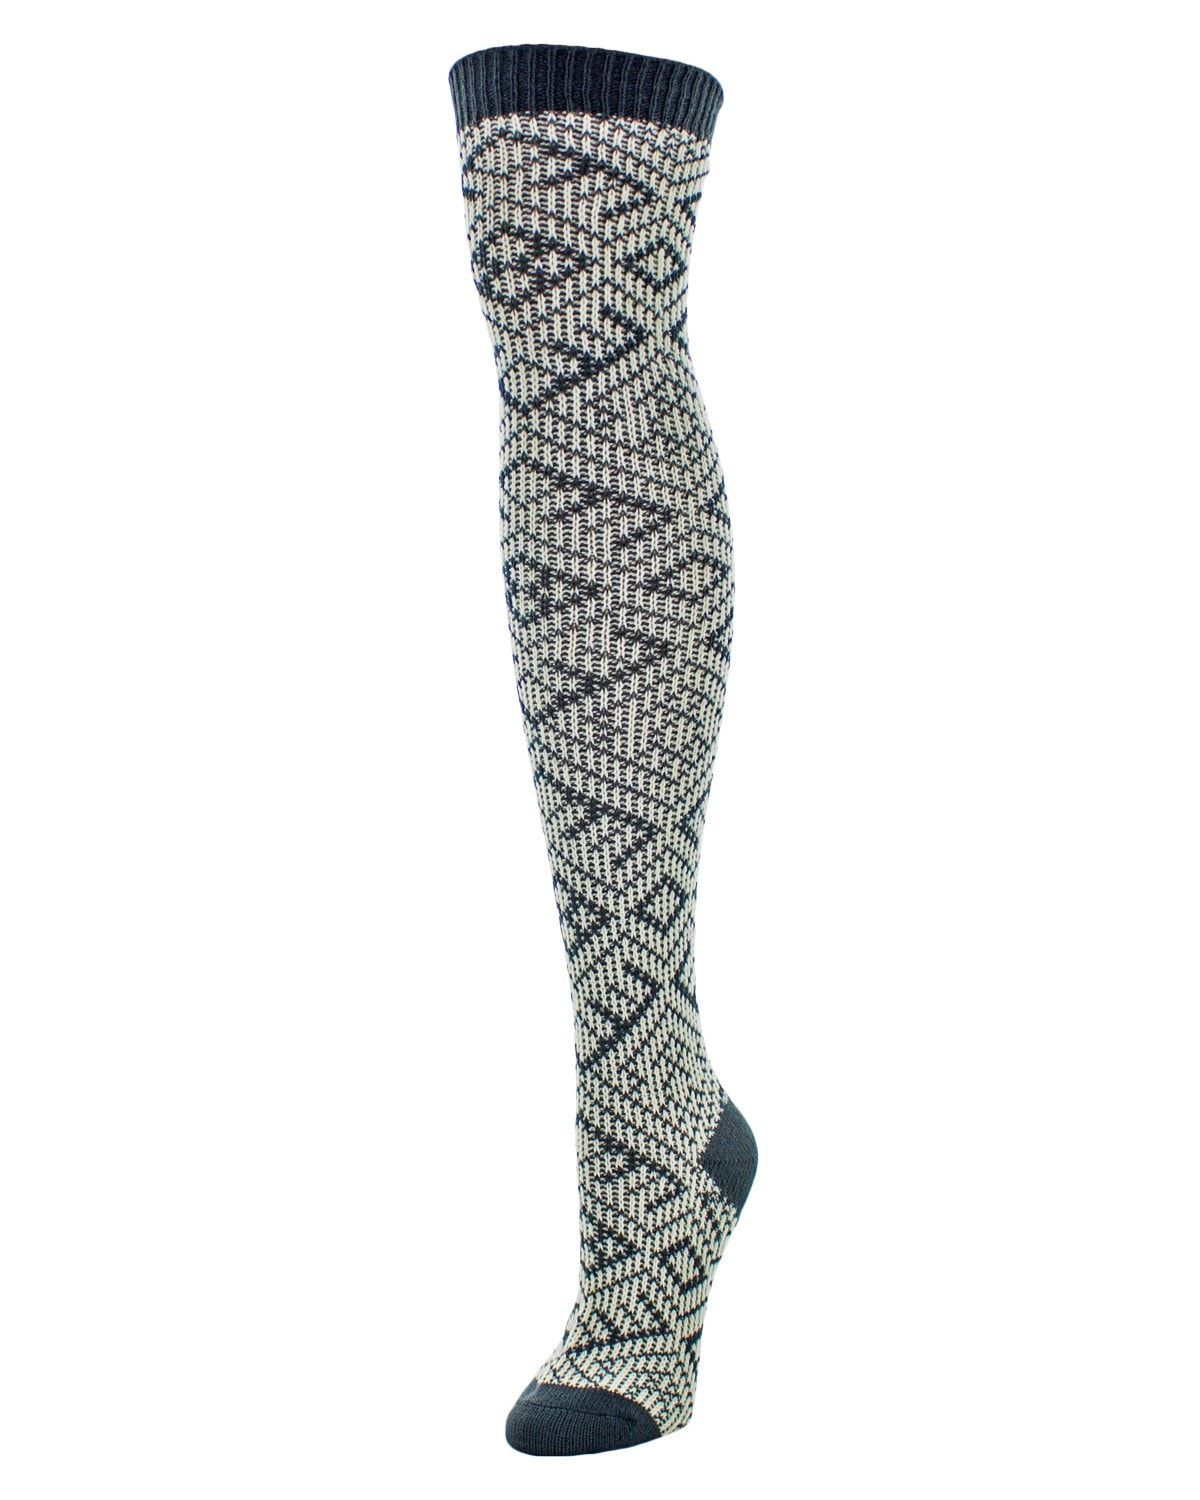 Checkers & Weaves Over The Knee Women Socks - MeMoi - 2